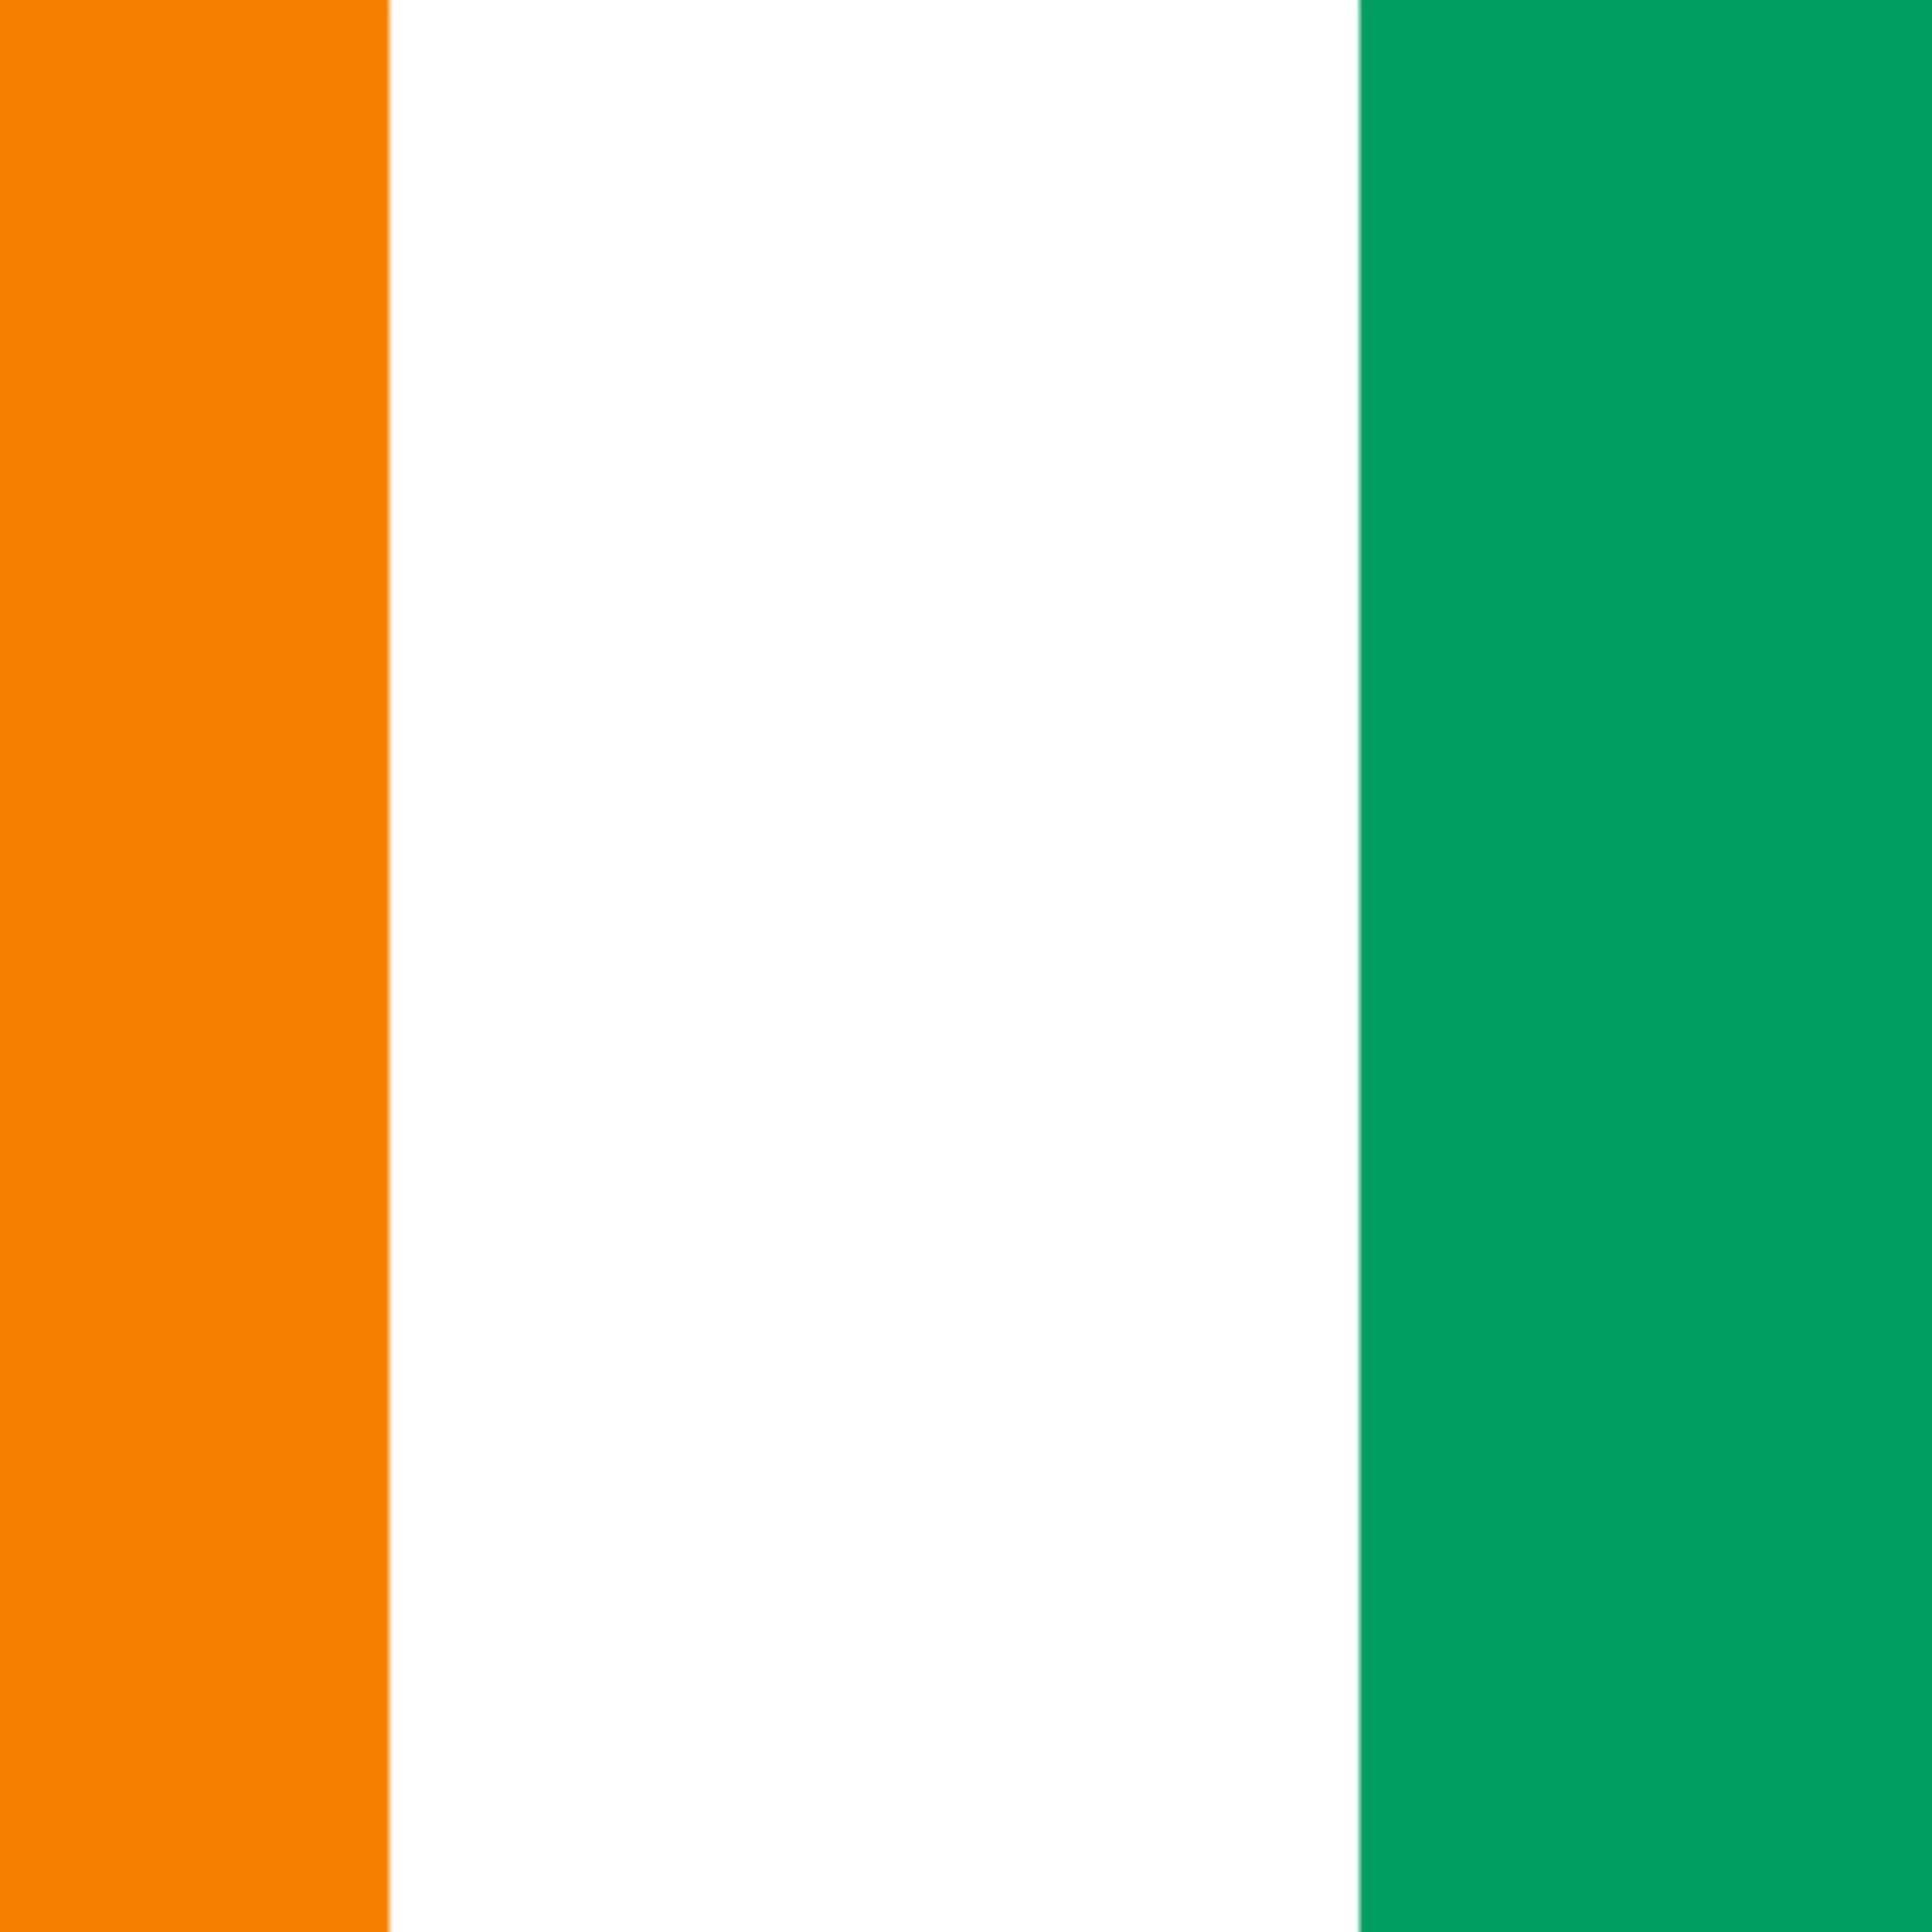 Honorary Consulate of Ivory Coast (Valencia)